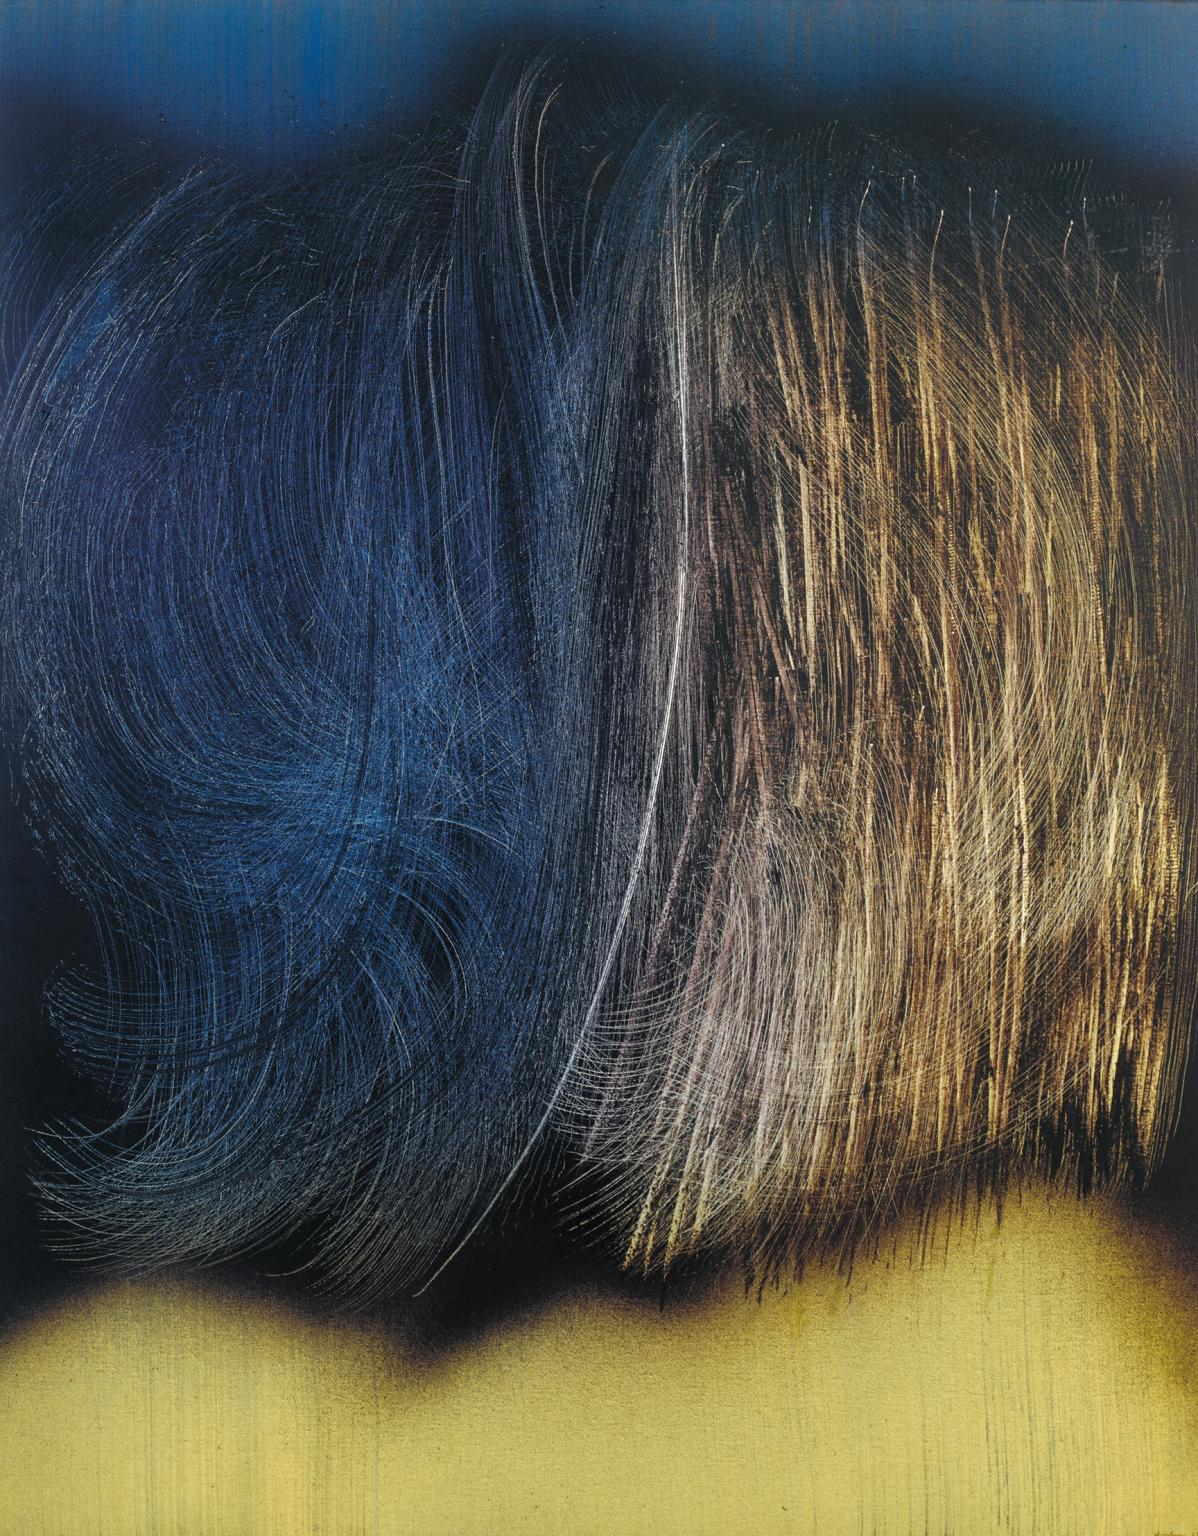 T1963-R6 1963 Hans Hartung 1904-1989 Purchased 1966 http://www.tate.org.uk/art/work/T00816